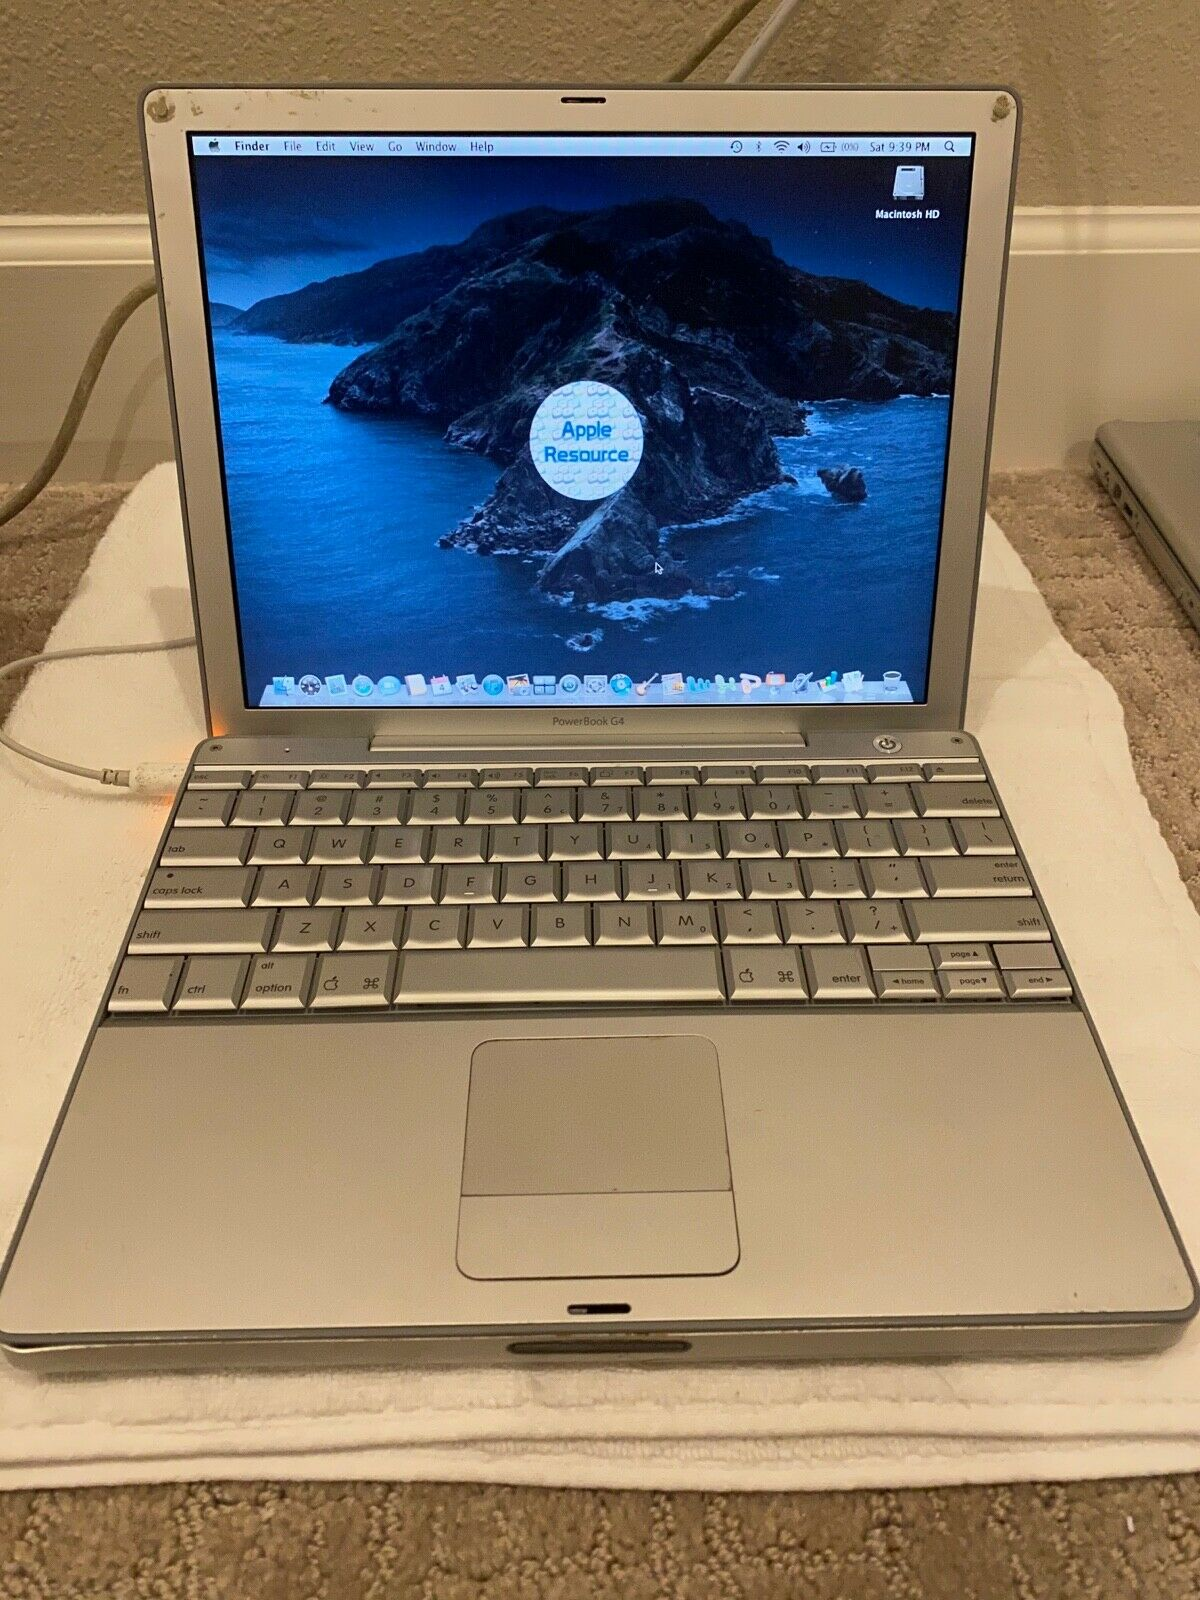 Apple PowerBook G4 12 1.5Ghz 100GB 1.25GB A1104 6,8 SuperDrive - $89.00